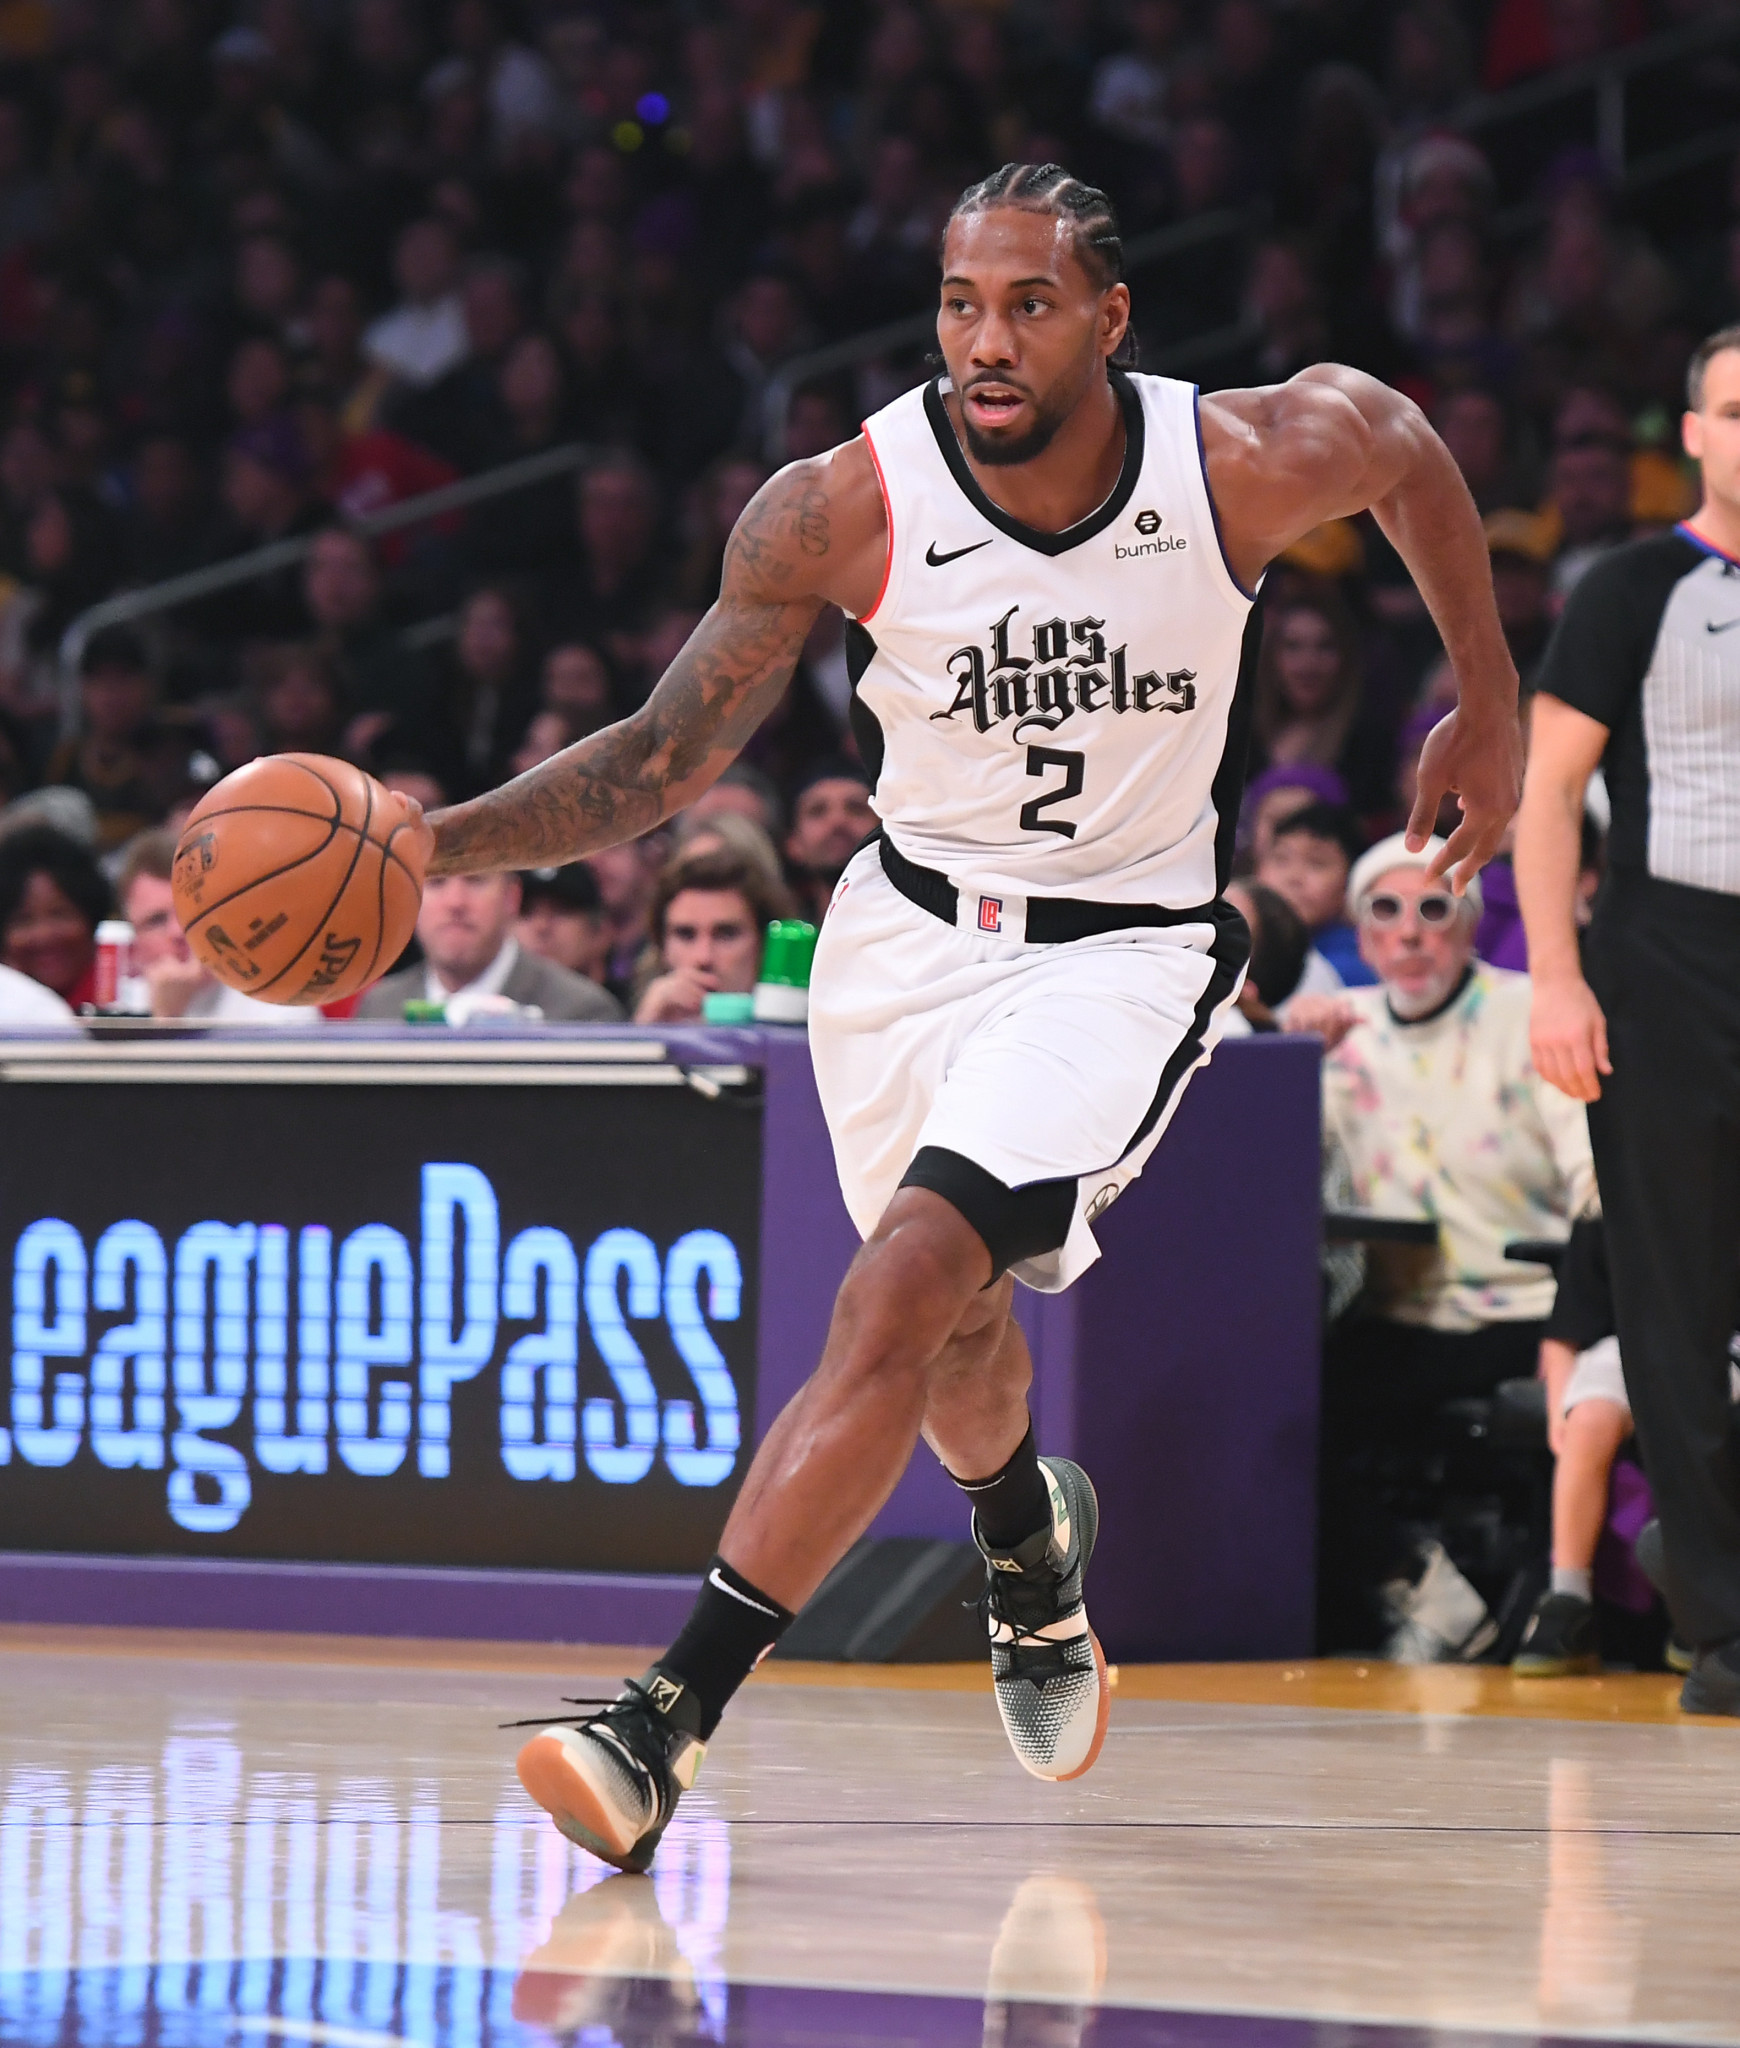 Kawhi Leonard, who was one of the youngsters who got to train with the 12-man team at London 2012, will look to make his first Olympic team in Tokyo ©Getty Images